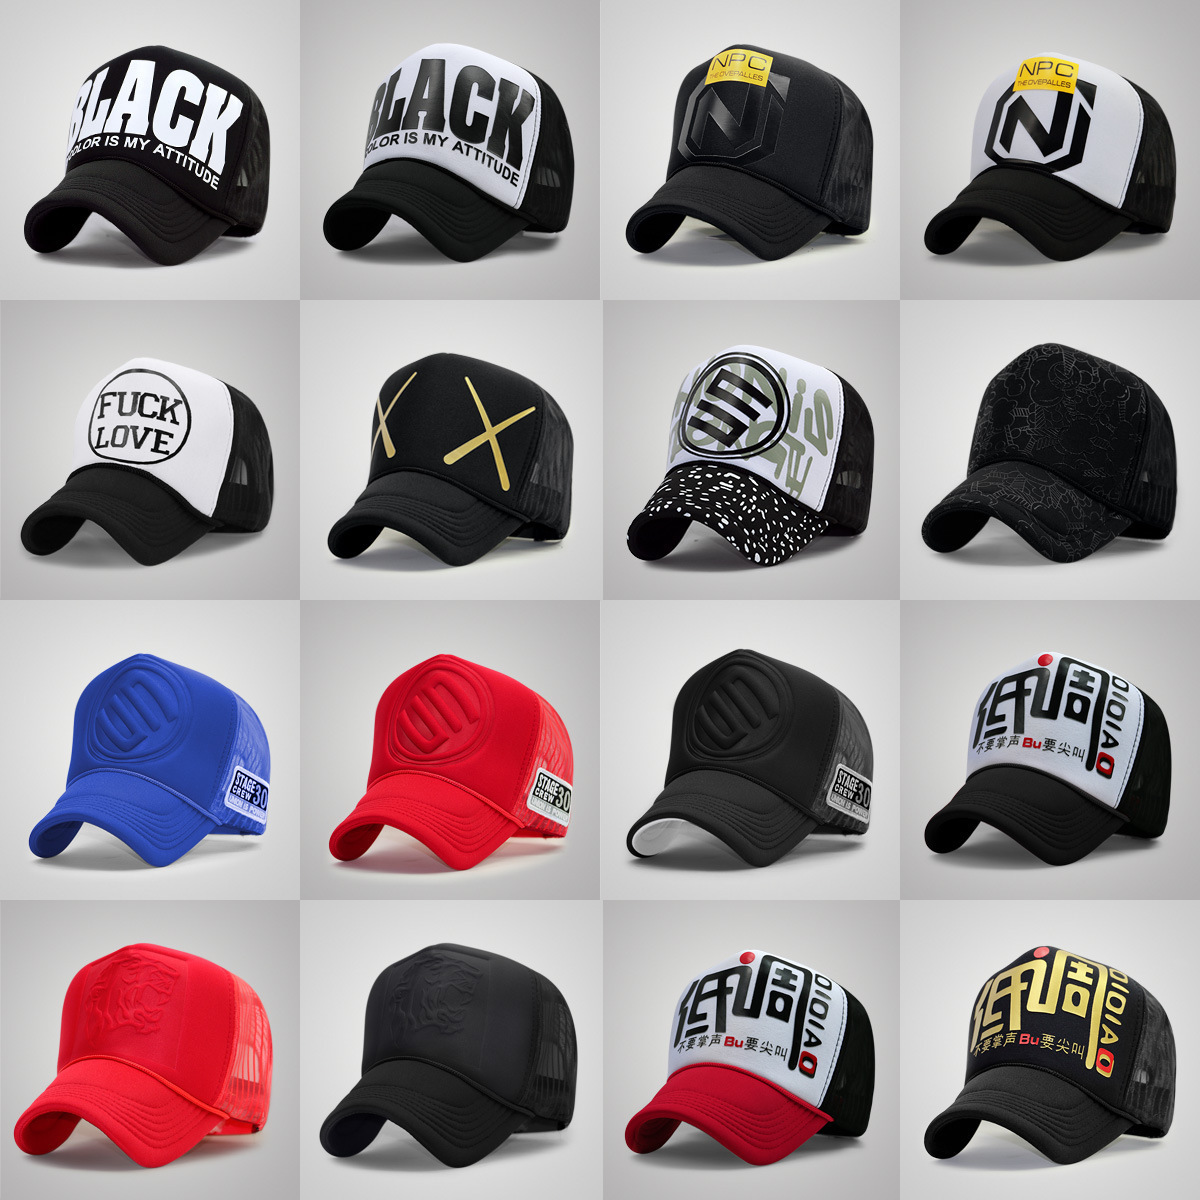 ed05c28da5e Wholesale Adult Trucker Cap Men And Women Hiphop Punk Rock Snapback Hats  Male Summer Sunshade Mesh Baseball Hat 60 Colors